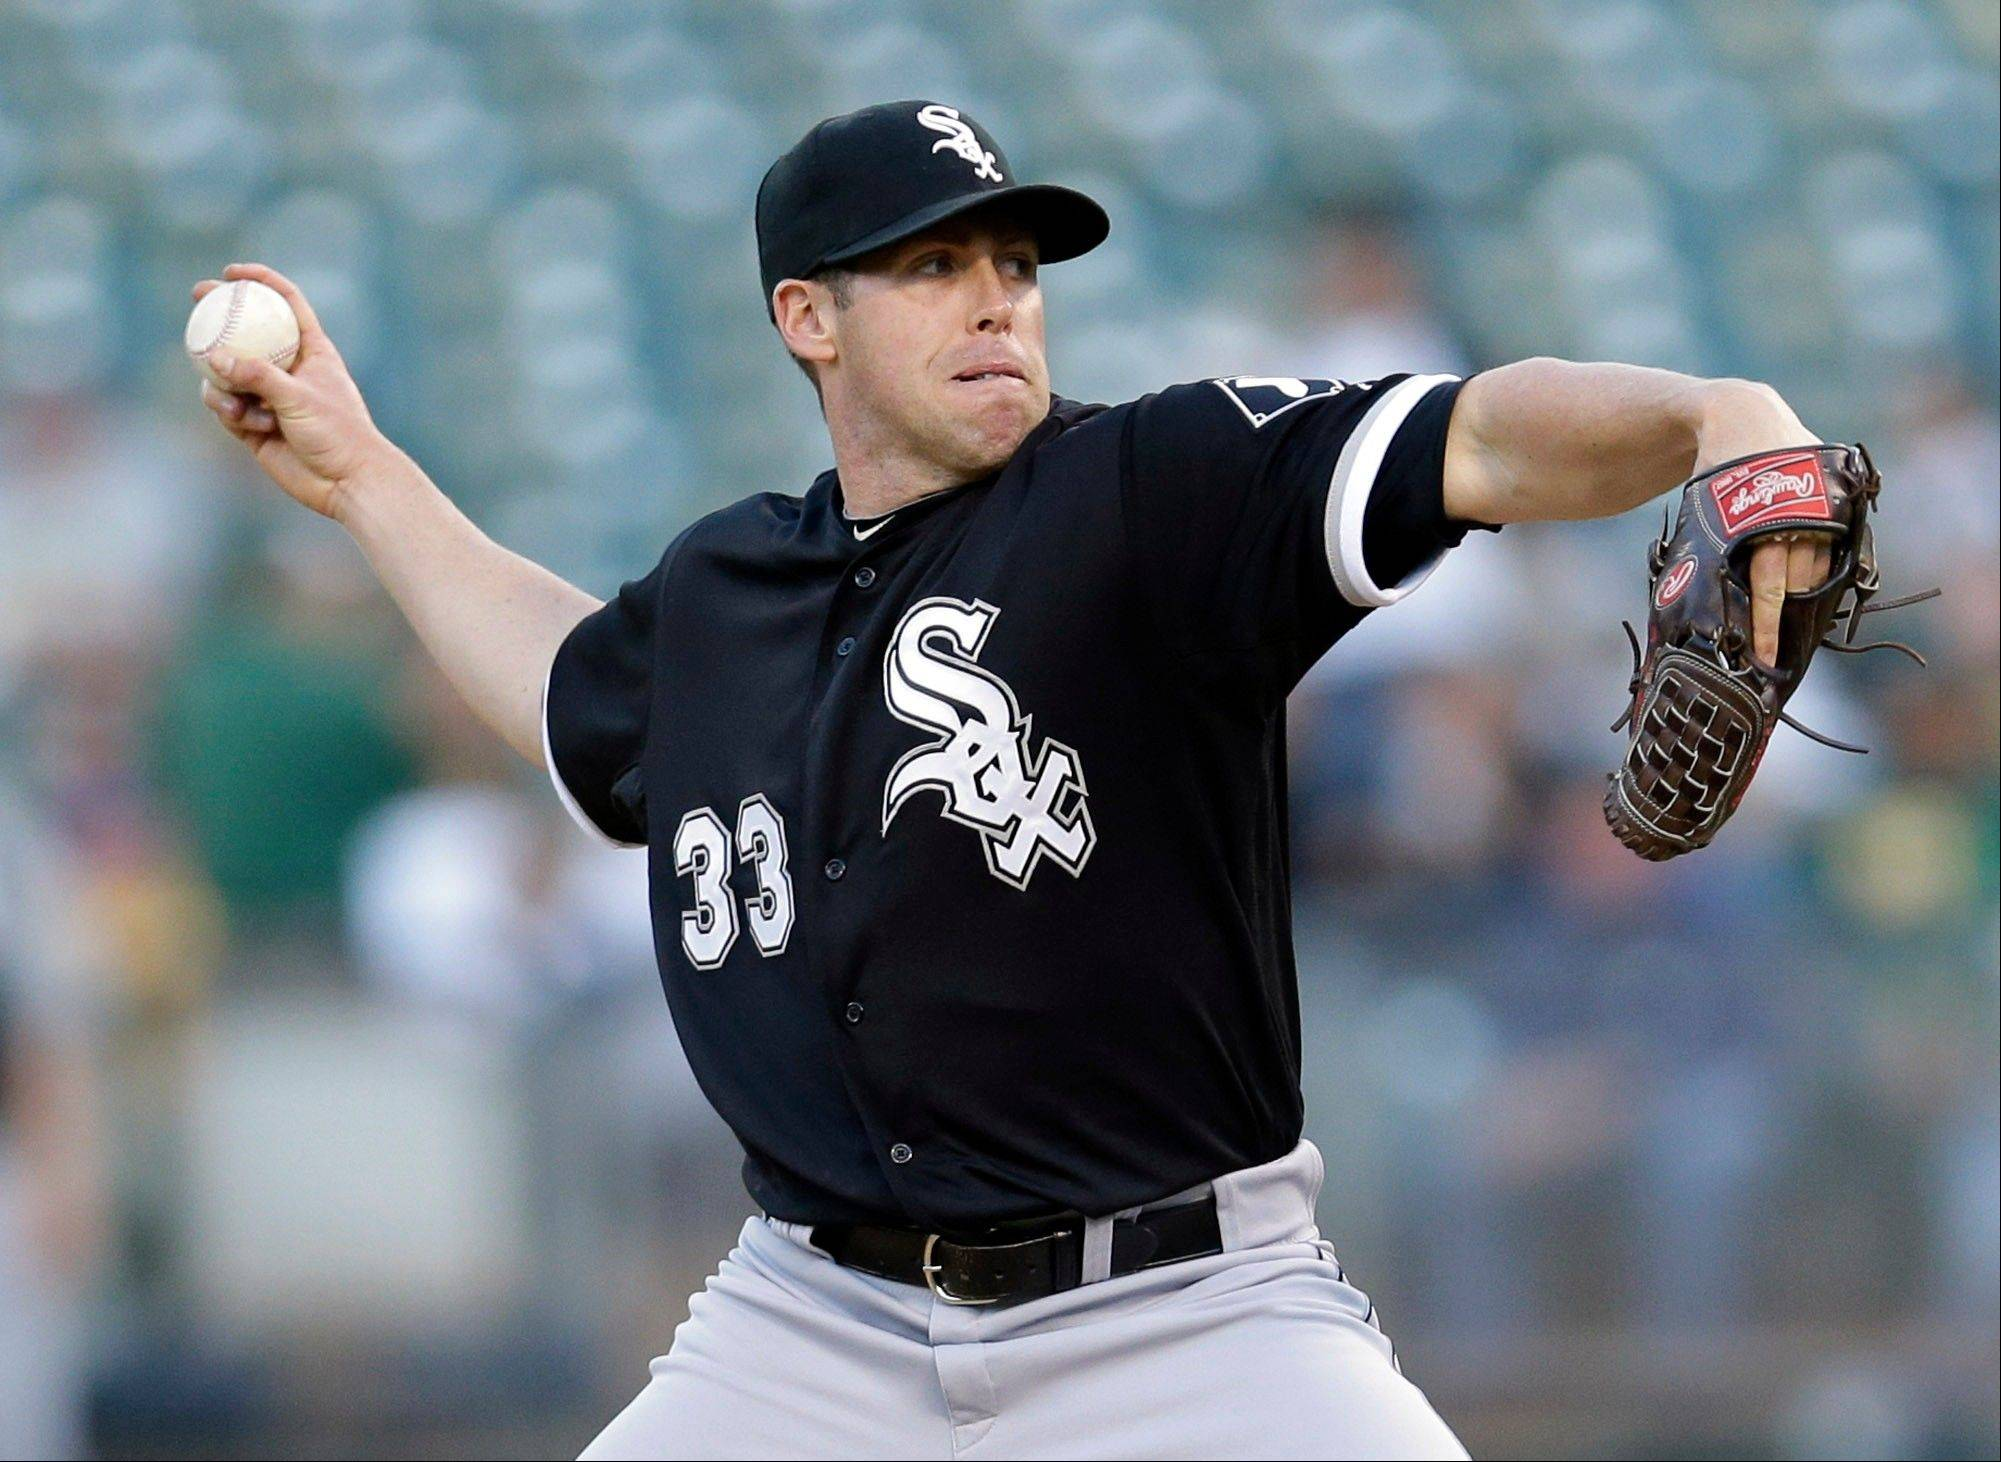 White Sox starter Dylan Axelrod shutout the Oakland Athletics for seventh innings but didn't get any run support Friday night in Oakland. The A's put together a 3-run inning in the eighth to win the game.